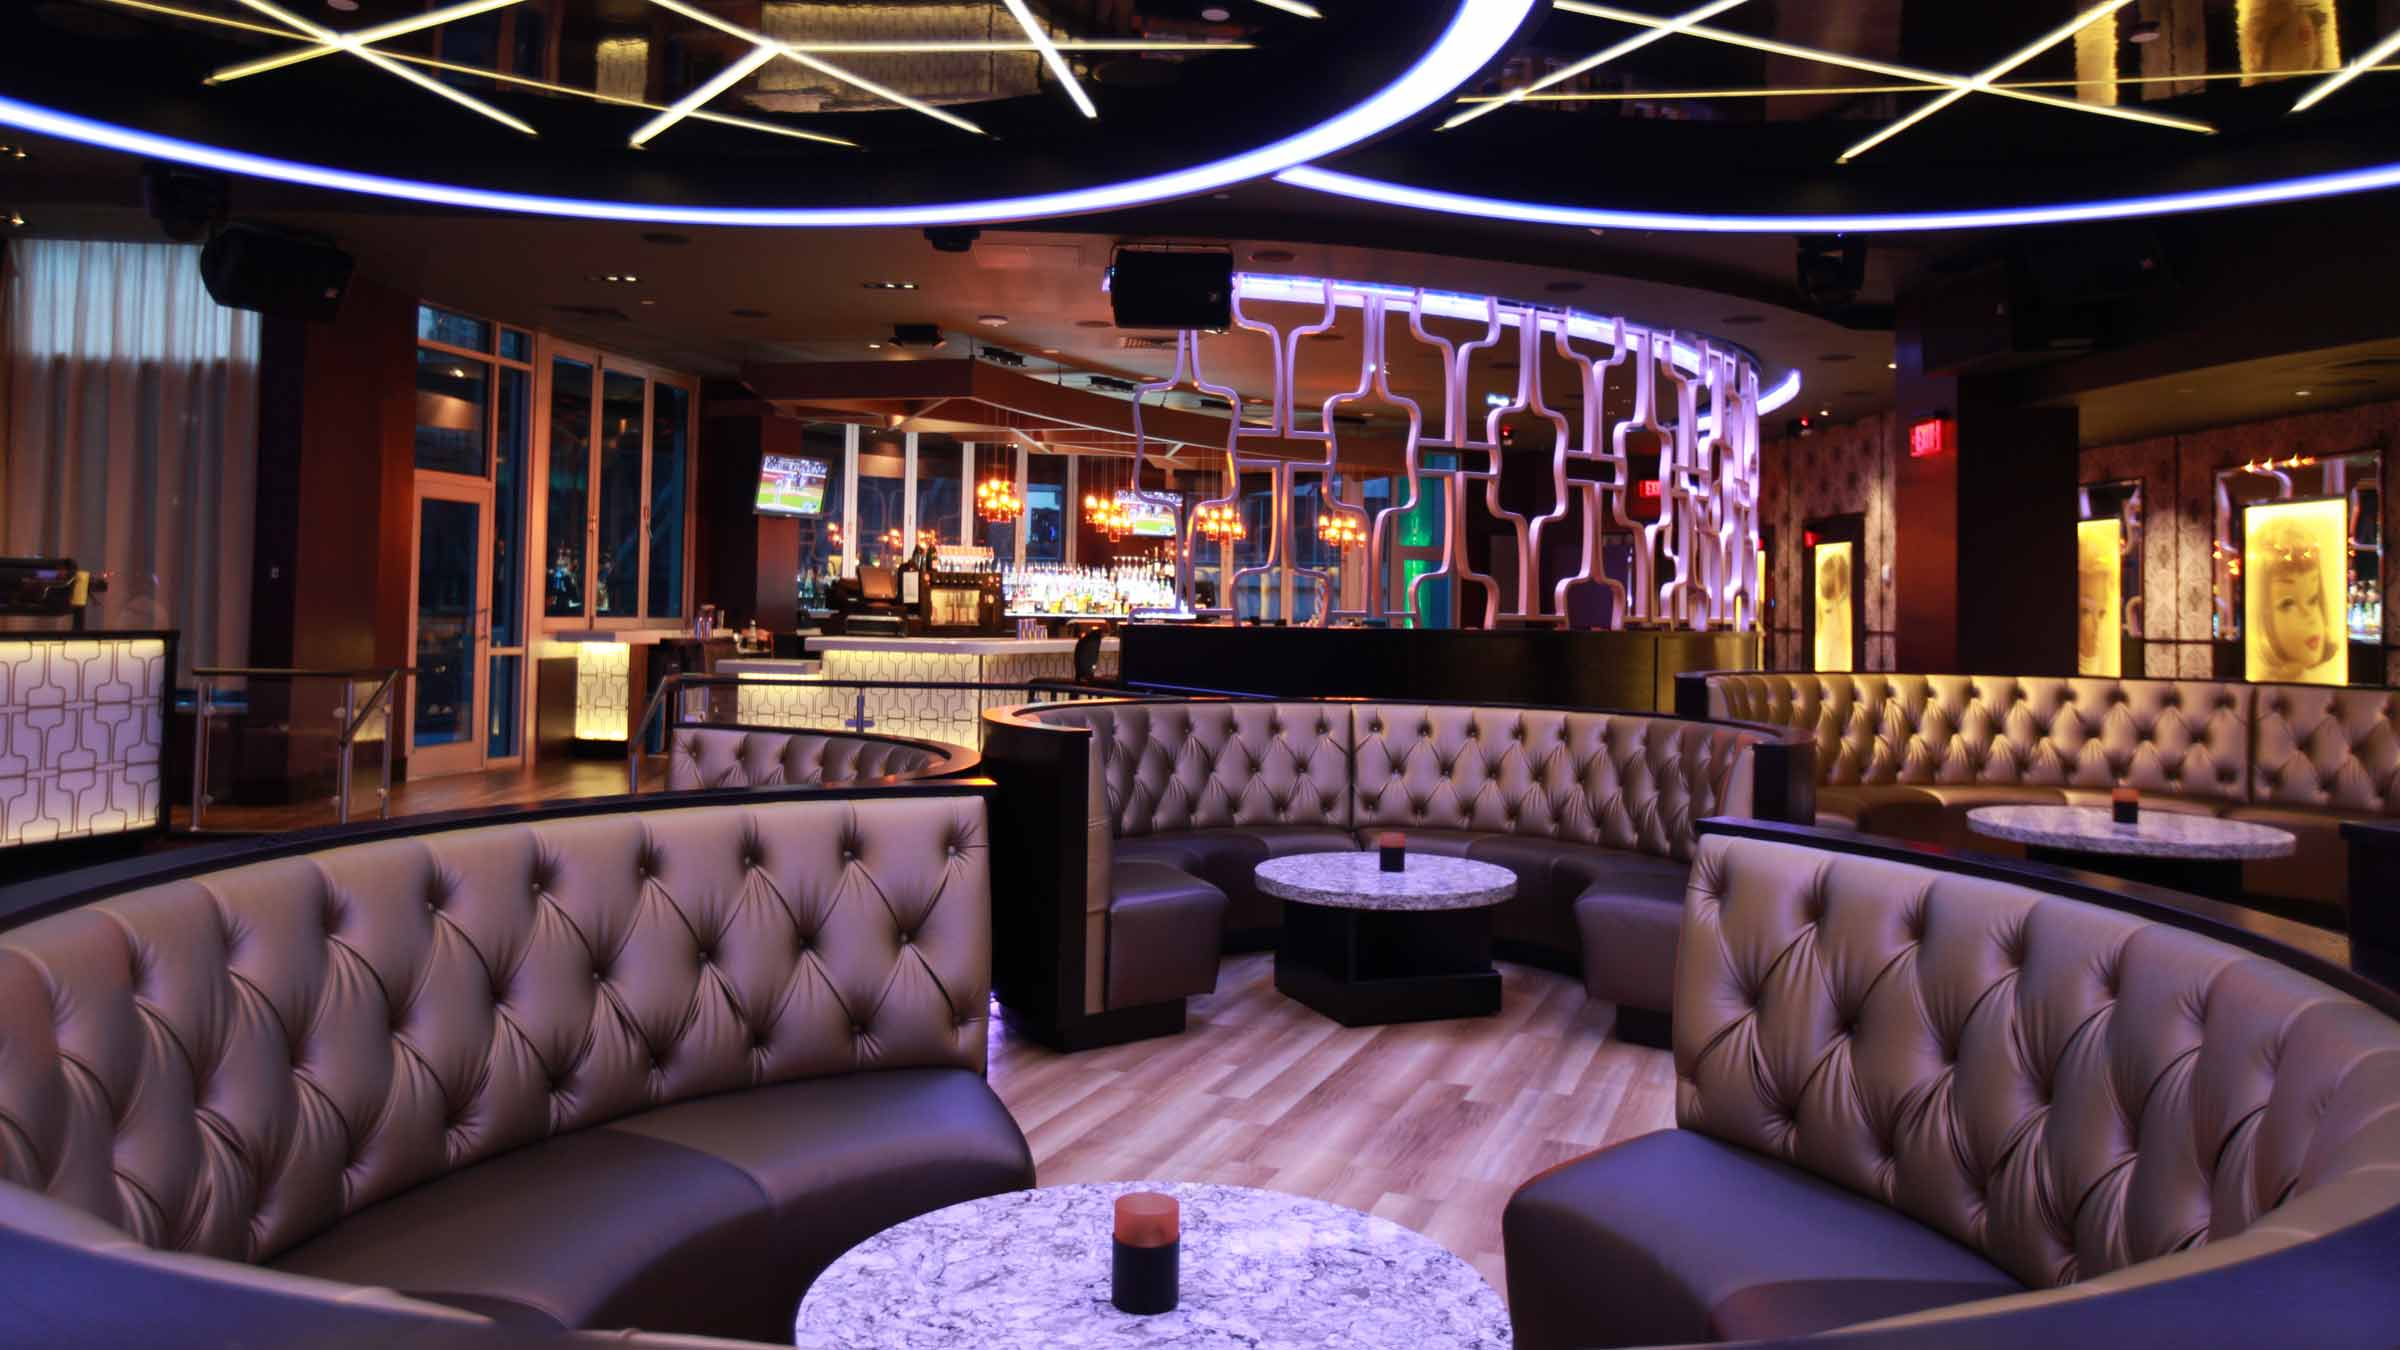 Restaurant hotel nightclub design by bigtime design - Design lounges ...